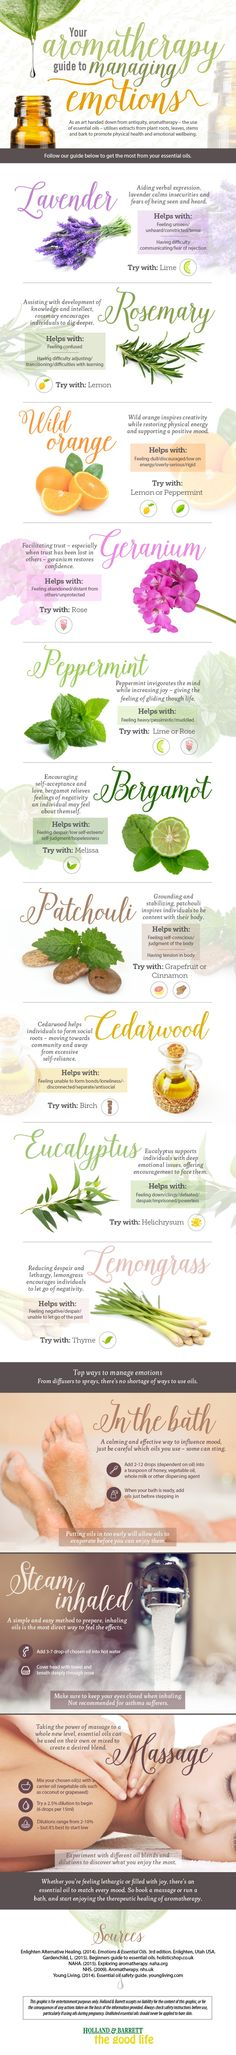 Your visual guide to using Aromatherapy and Essential Oils to Manage Mood and Energy! ❤ essential oils with love Essential Oil Uses, Young Living Essential Oils, Natural Oils, Natural Healing, Freetime Activities, Info Board, Aromatherapy Oils, Diy Aromatherapy Candles, Aromatherapy Recipes